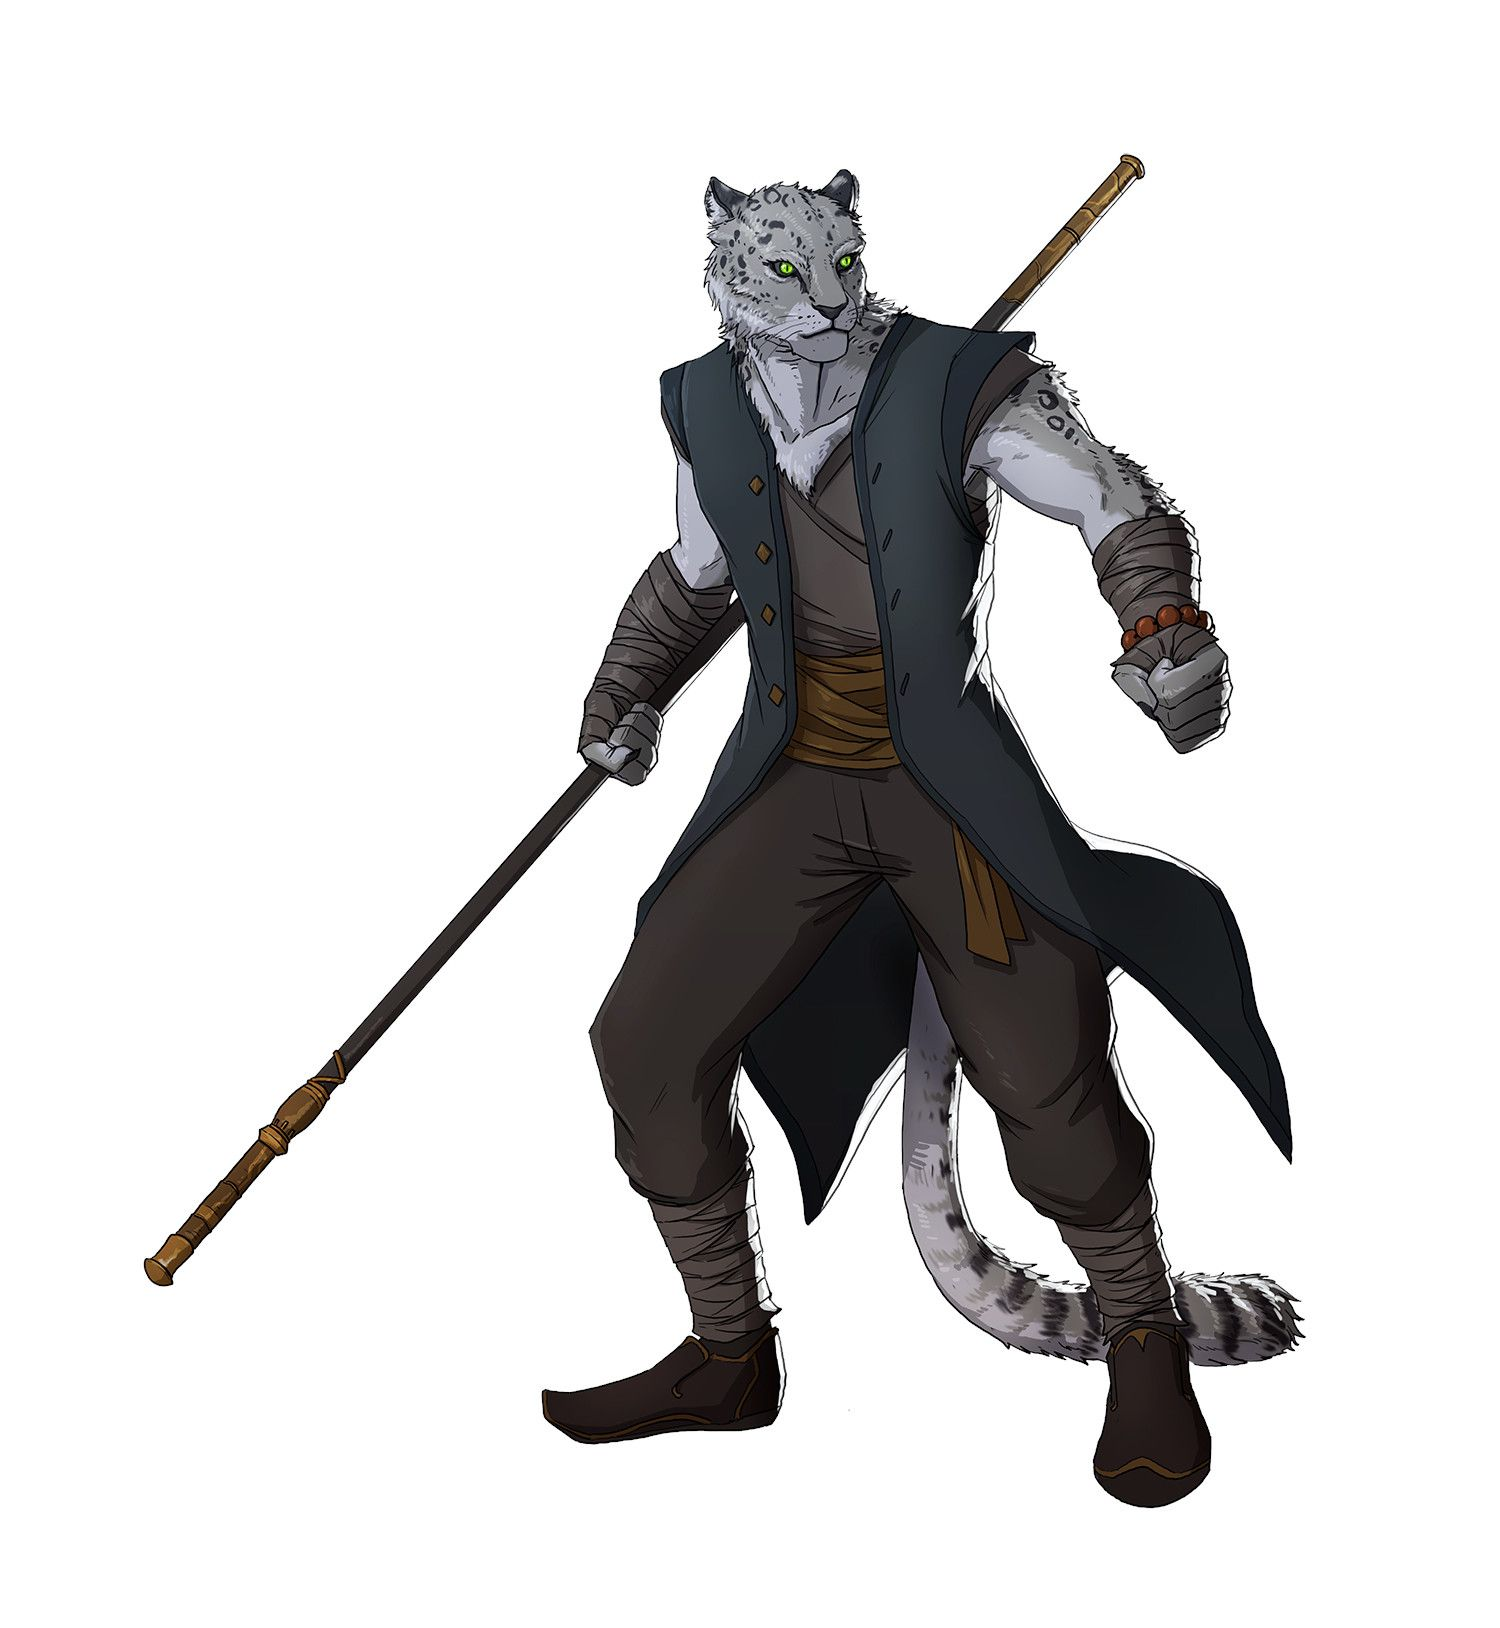 Pin On Character Reference Lg f tabaxi monk (way of the long death) 12, azorius functionary for the usual. pinterest